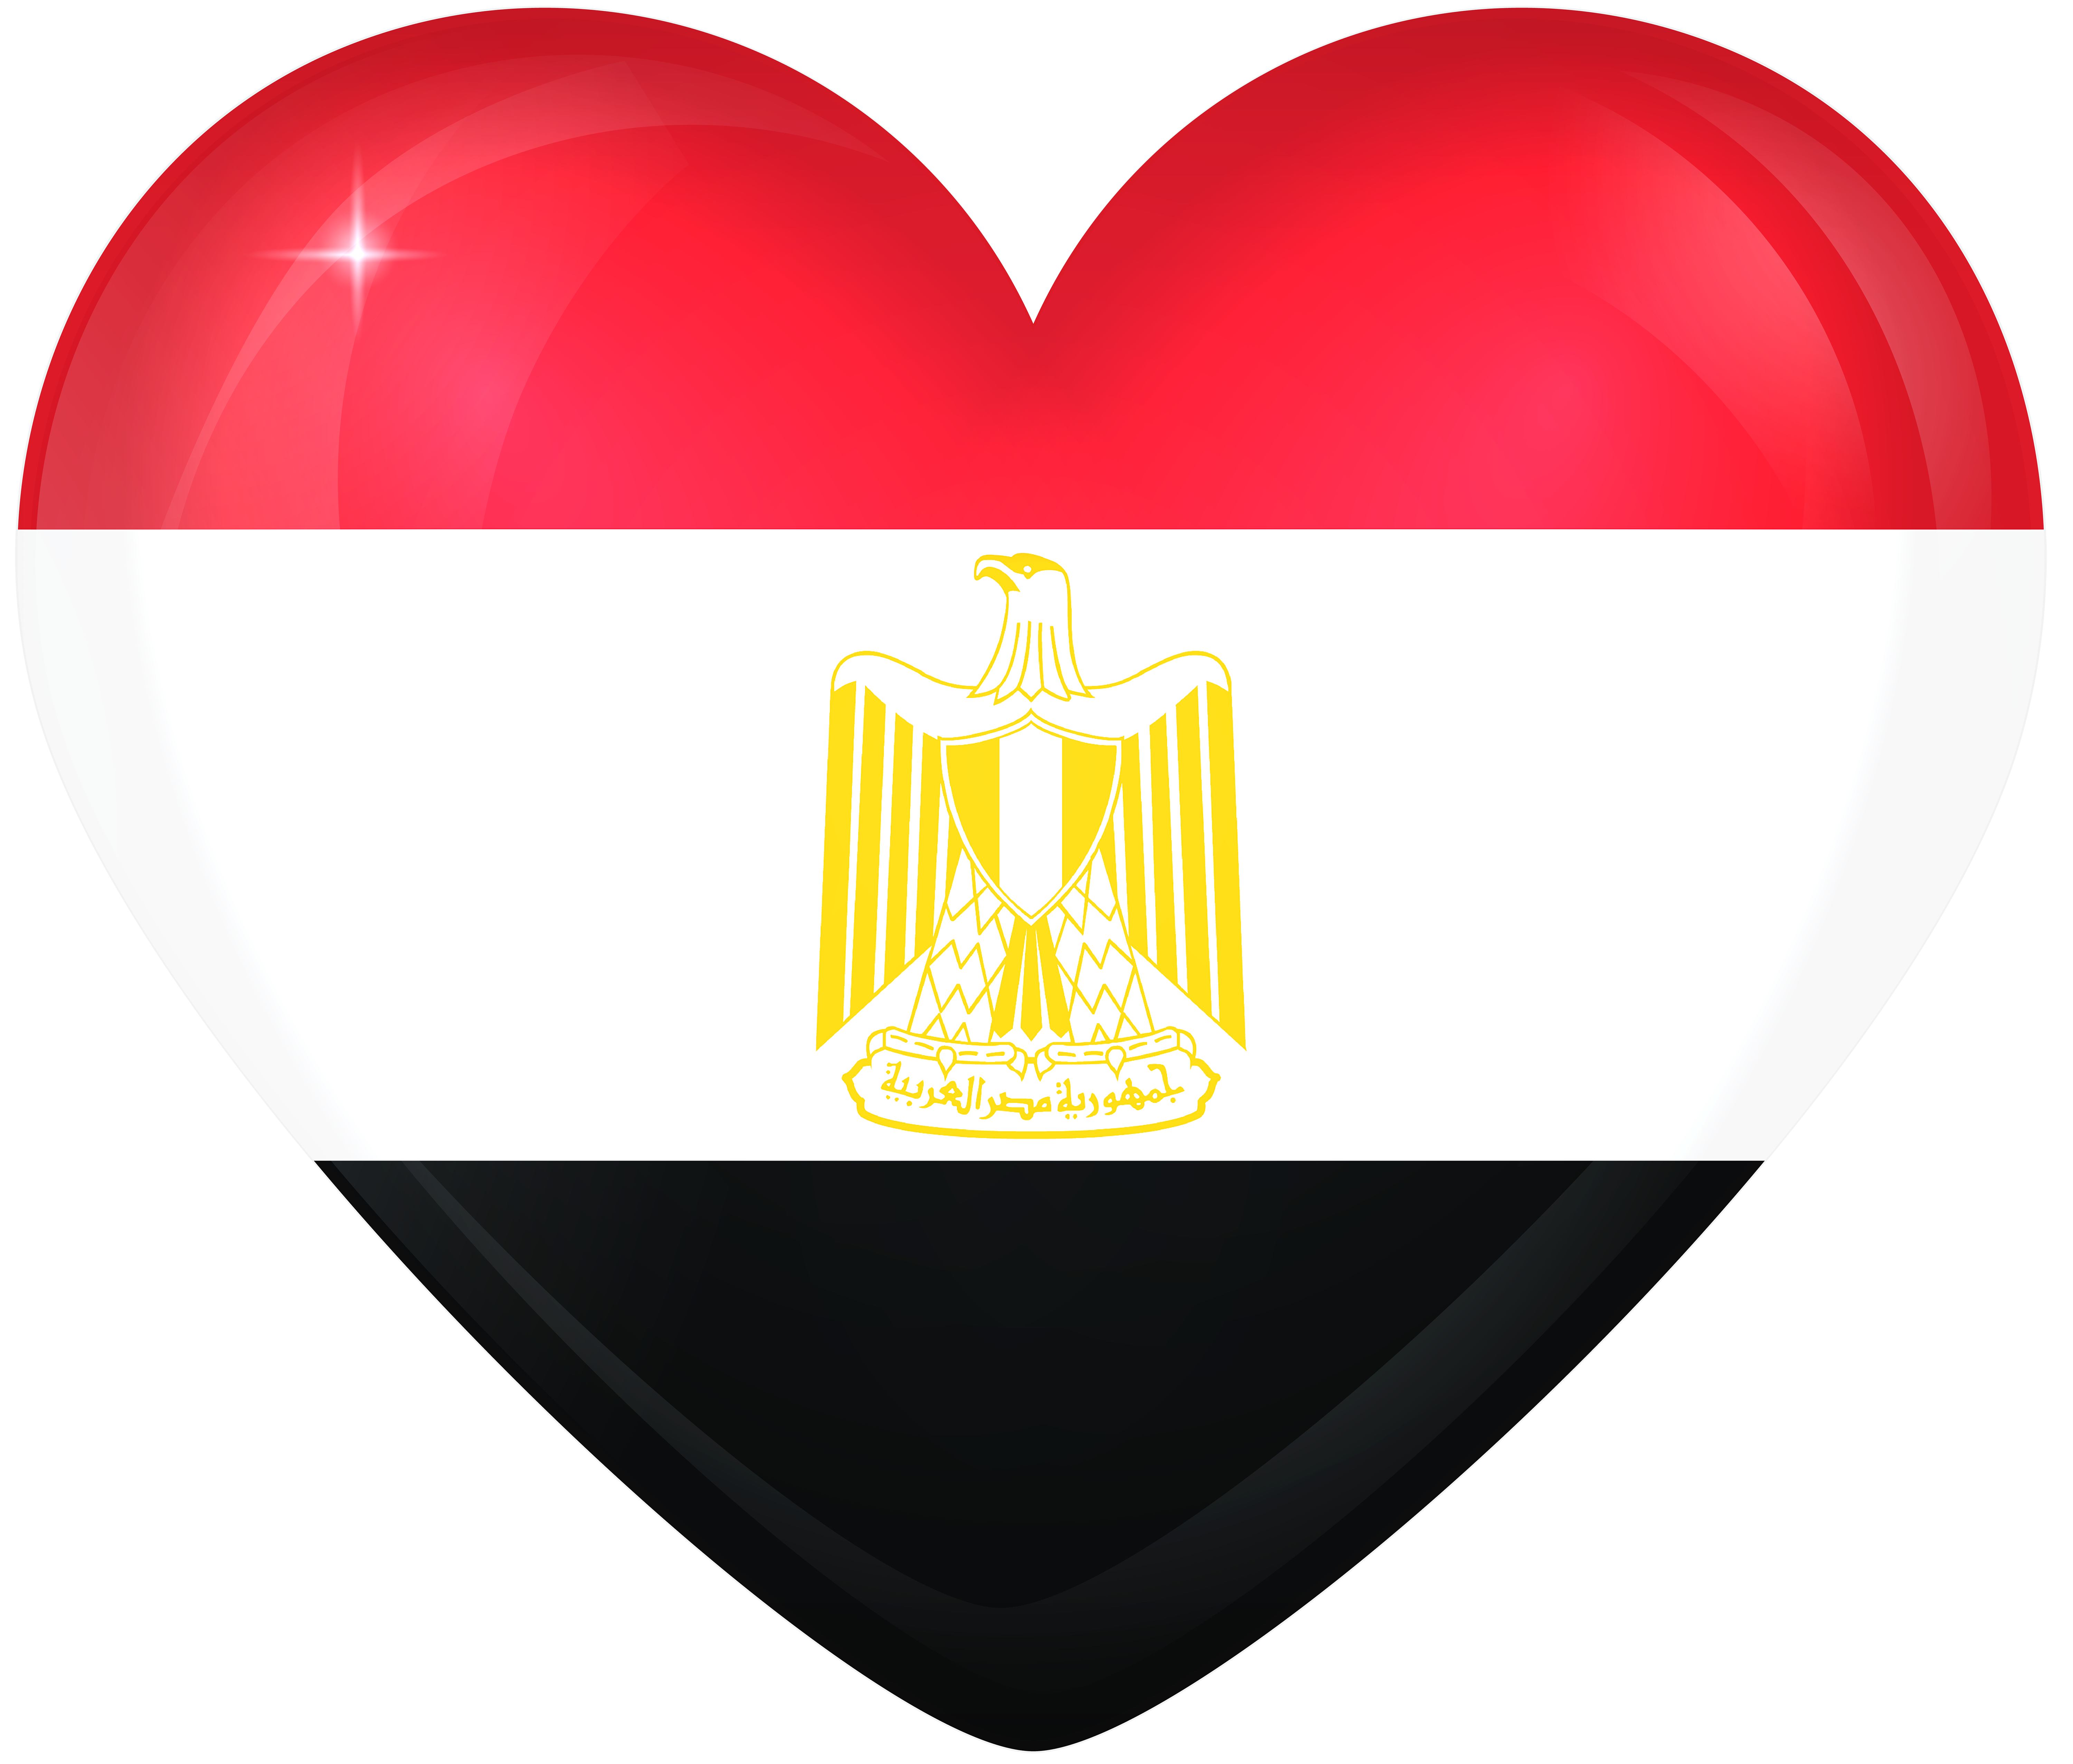 Egypt Large Heart Flag | Gallery Yopriceville - High-Quality Images ... image free